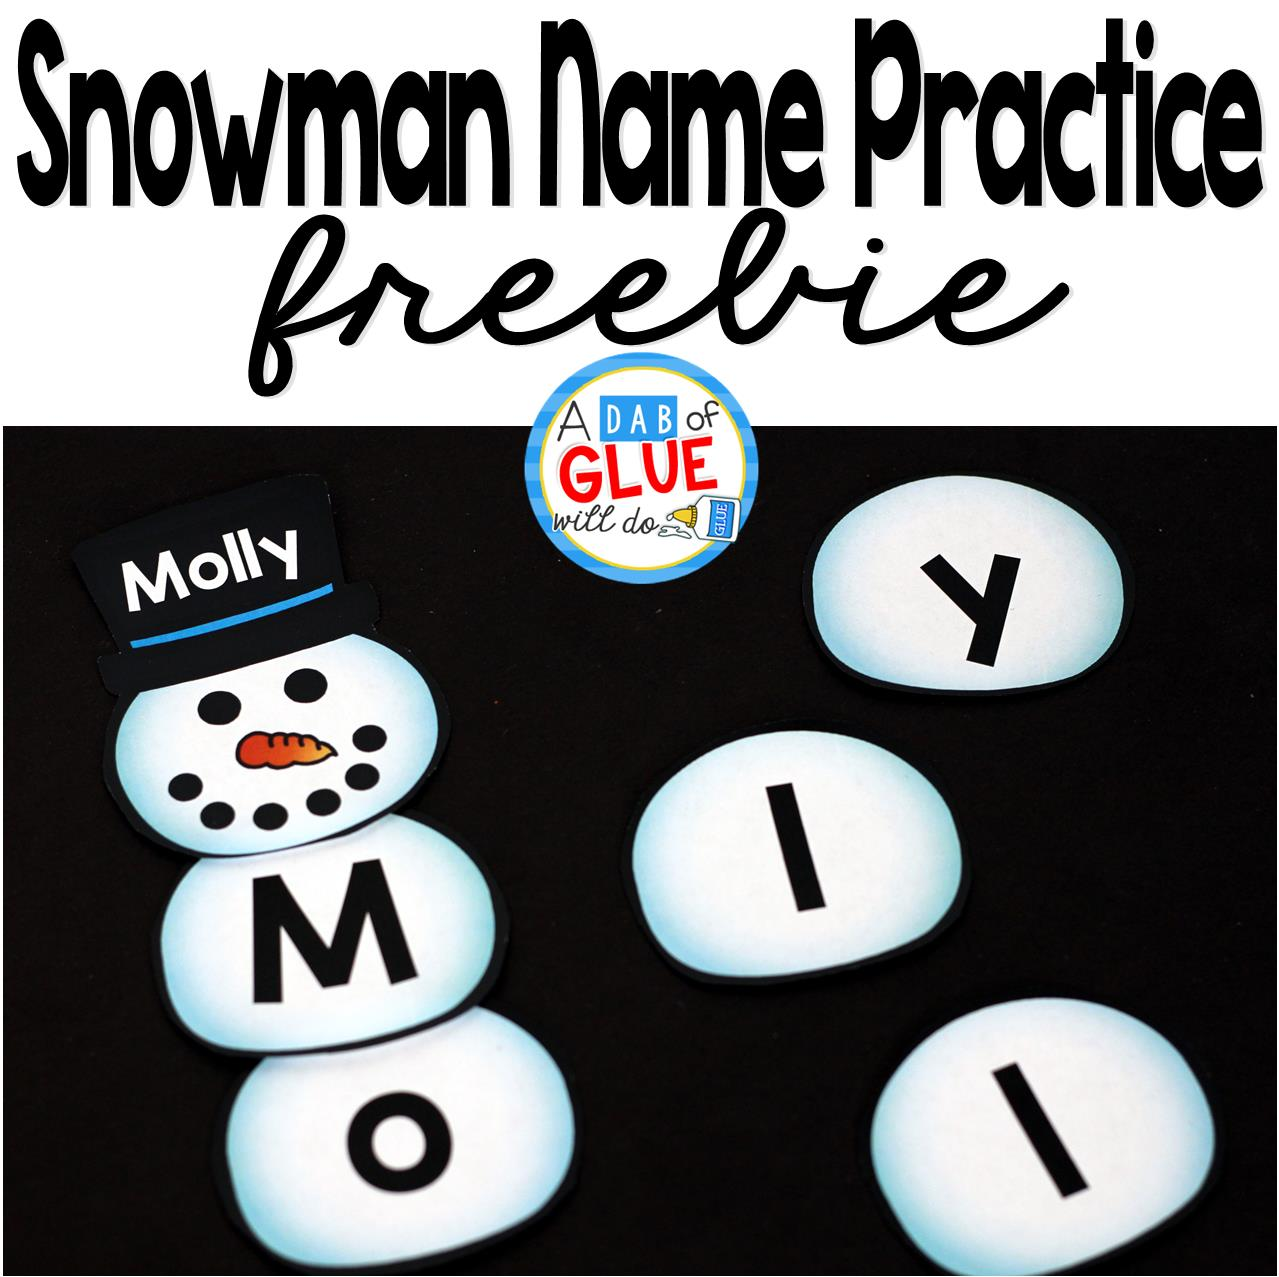 Snowman Name Building Practice Printable is the perfect hands-on activity for students to practice making their name. This free printable is perfect for preschool and kindergarten students.